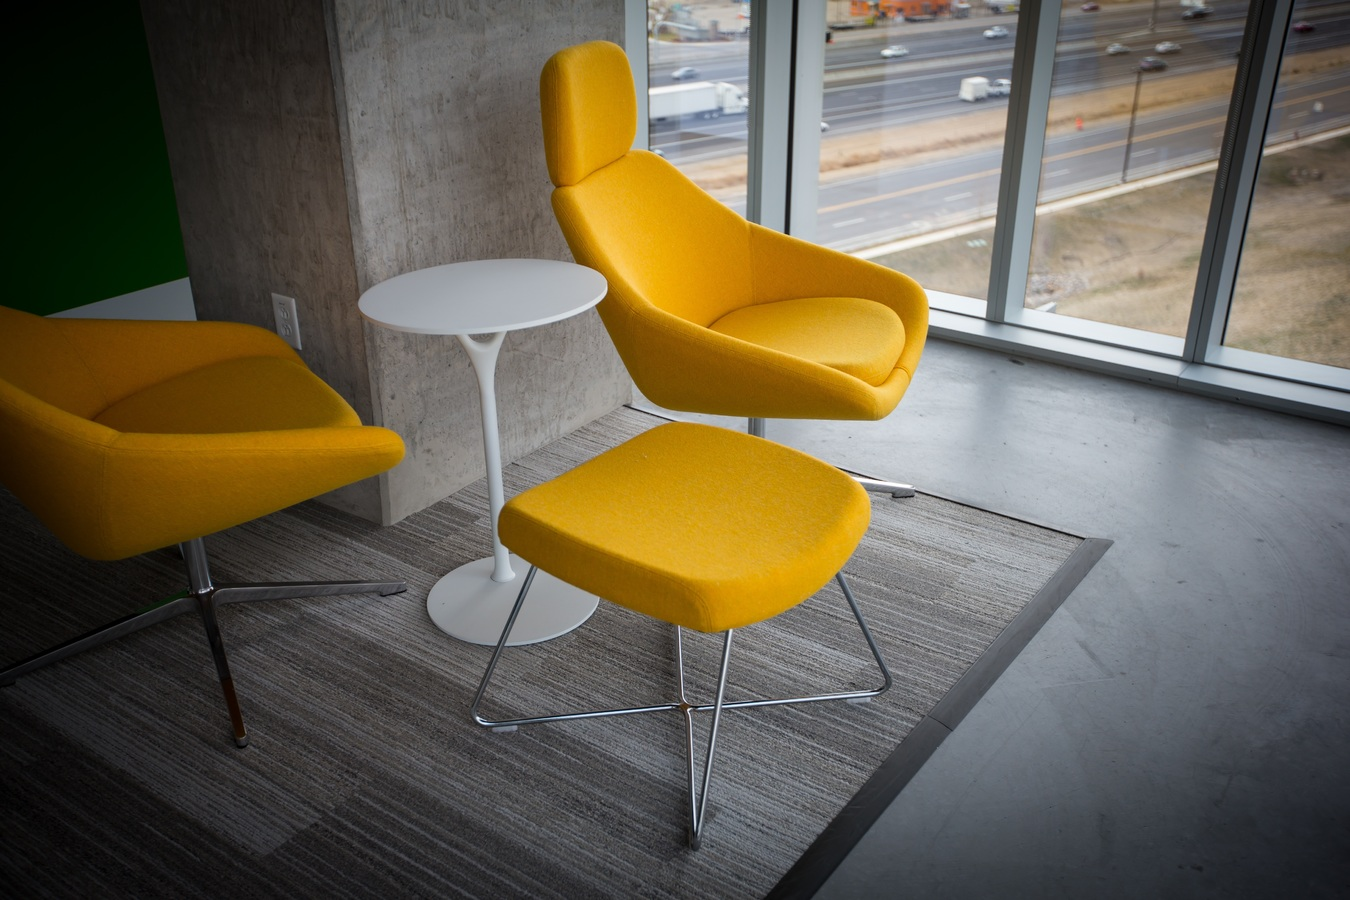 chairs in office space